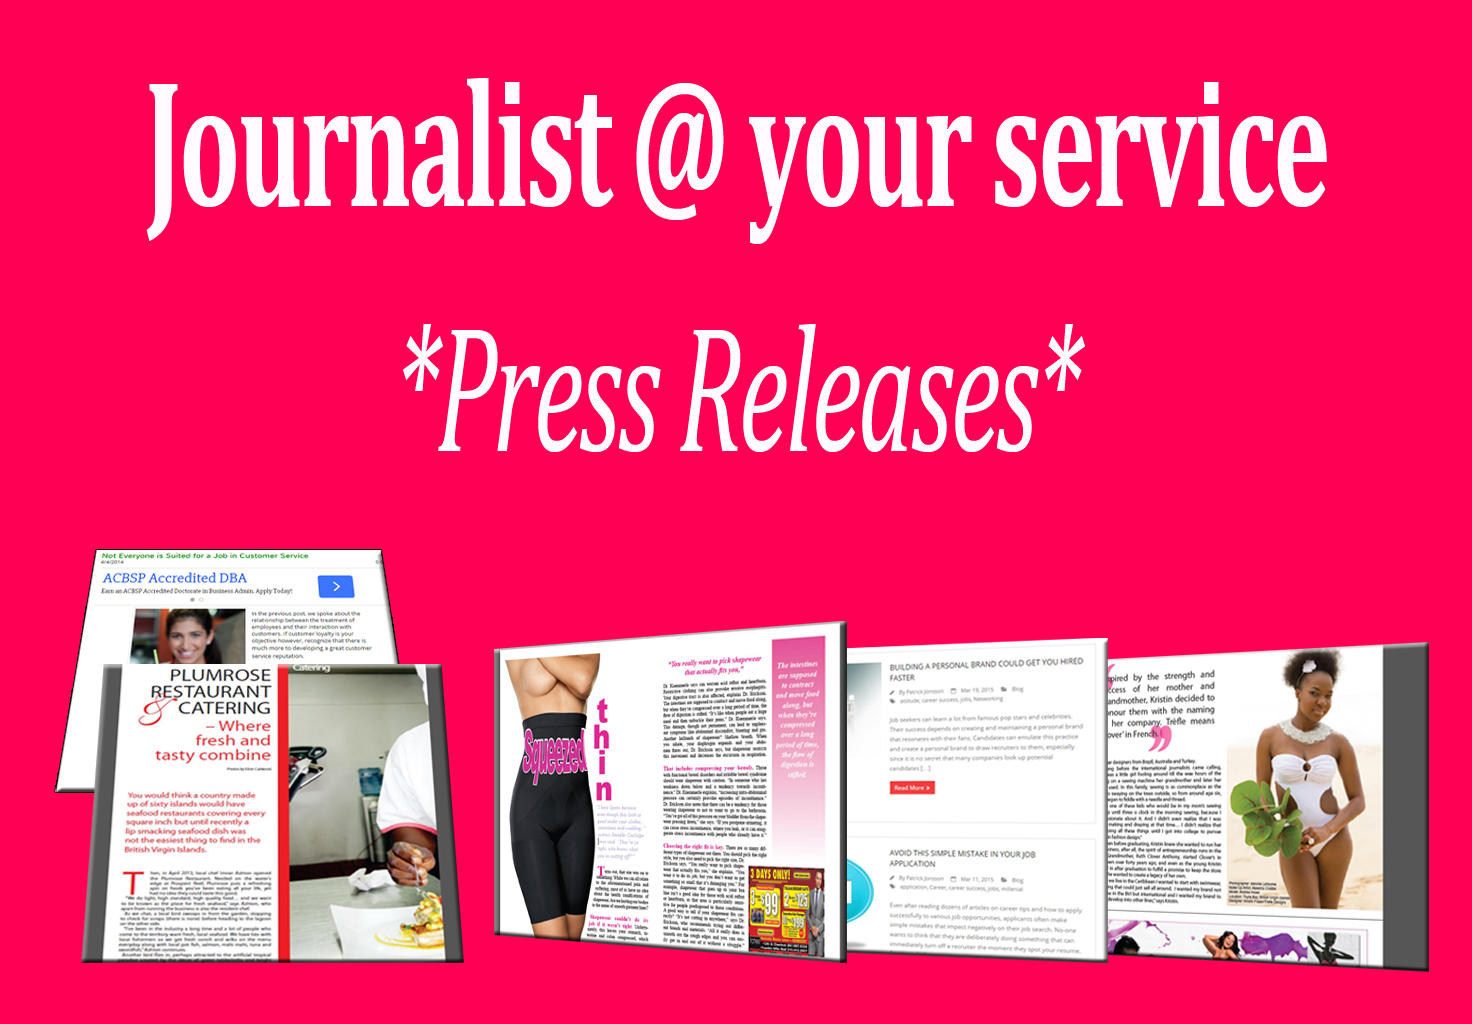 Professional Media Ready Press Releases by Prowritersden - 73861